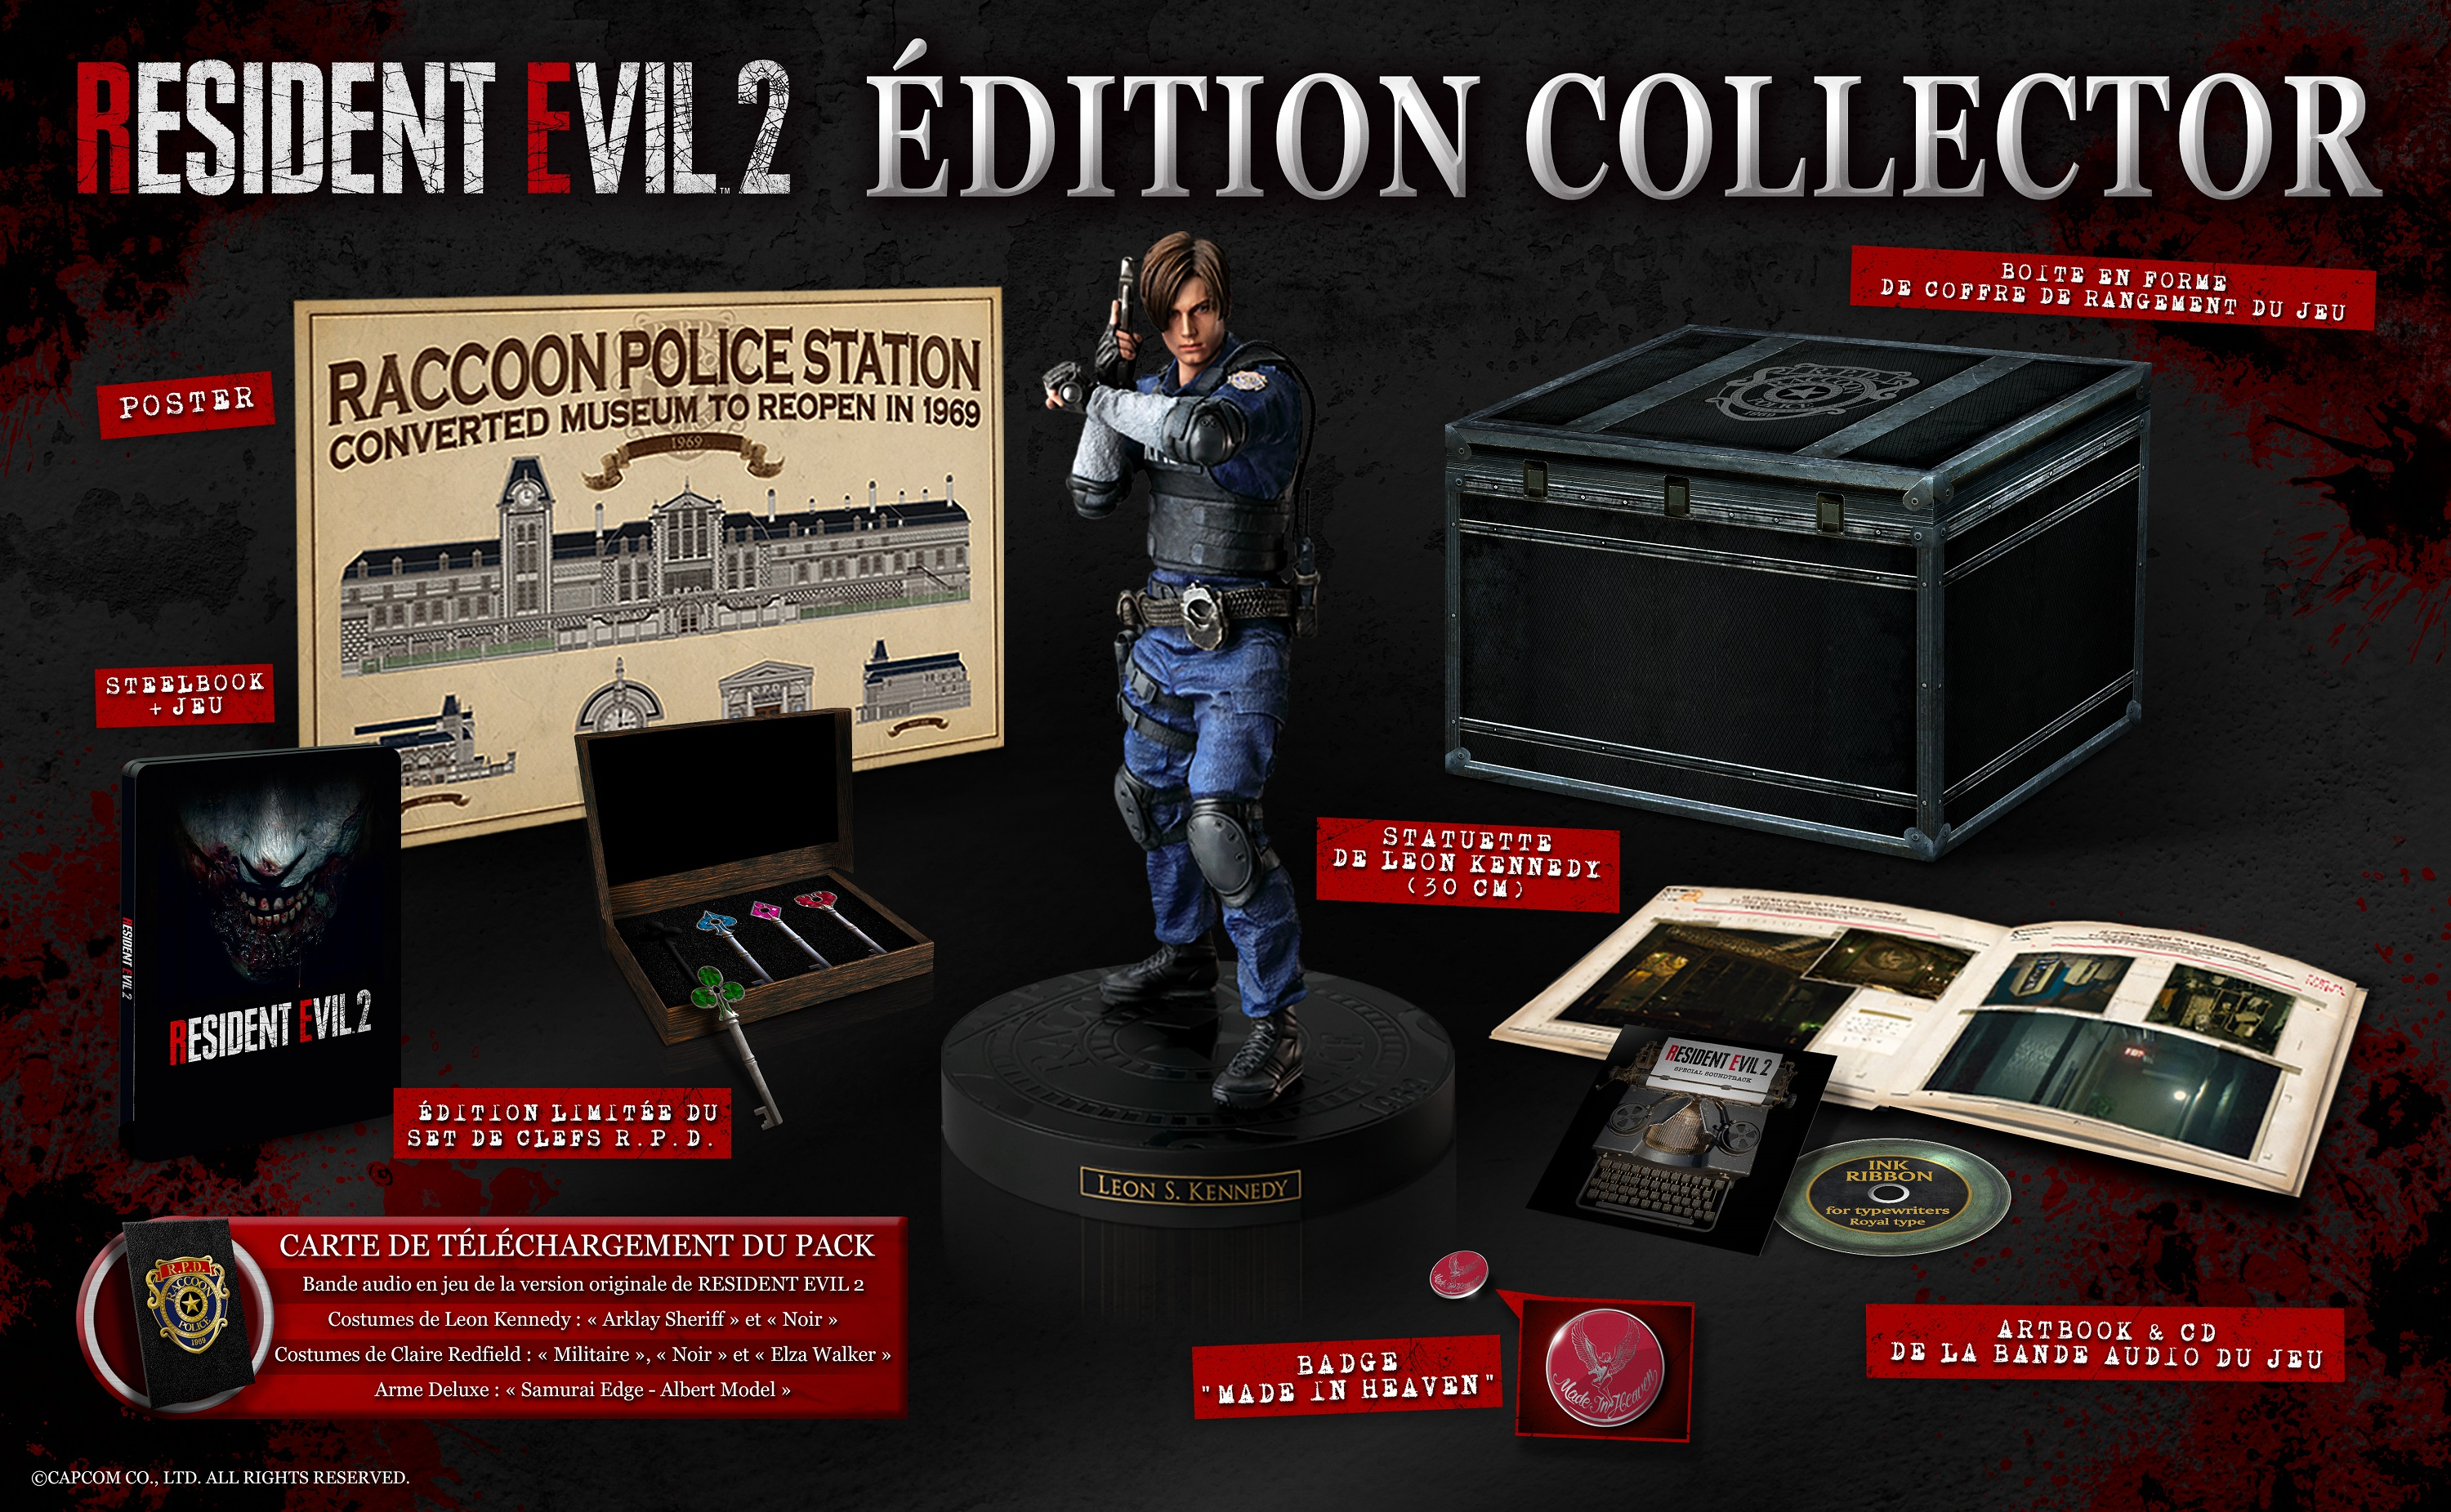 Edition Collector Resident Evil 2 Remake Europe